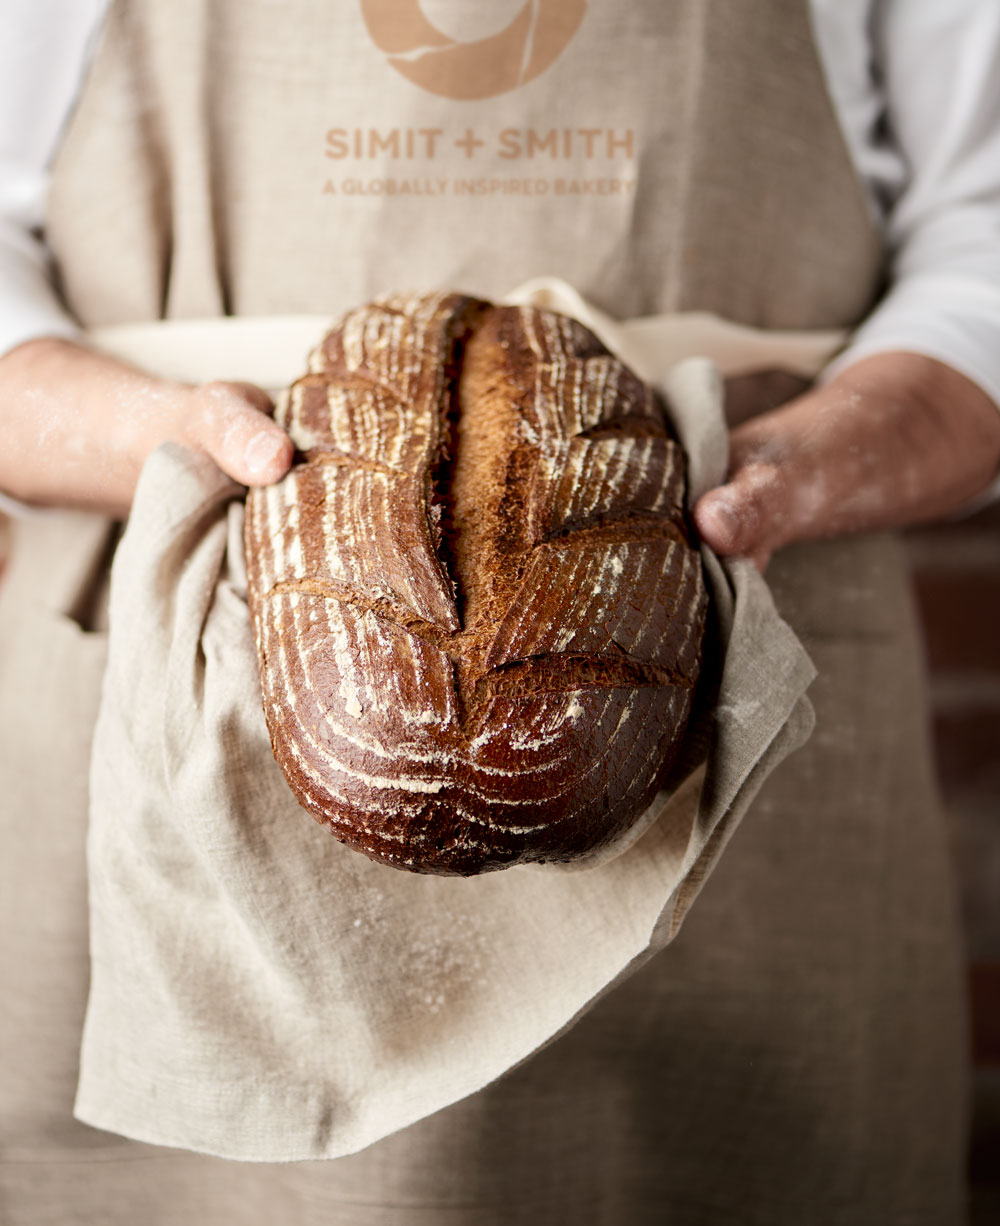 Simit + Smith Cover | Amy Roth Photo.jpg